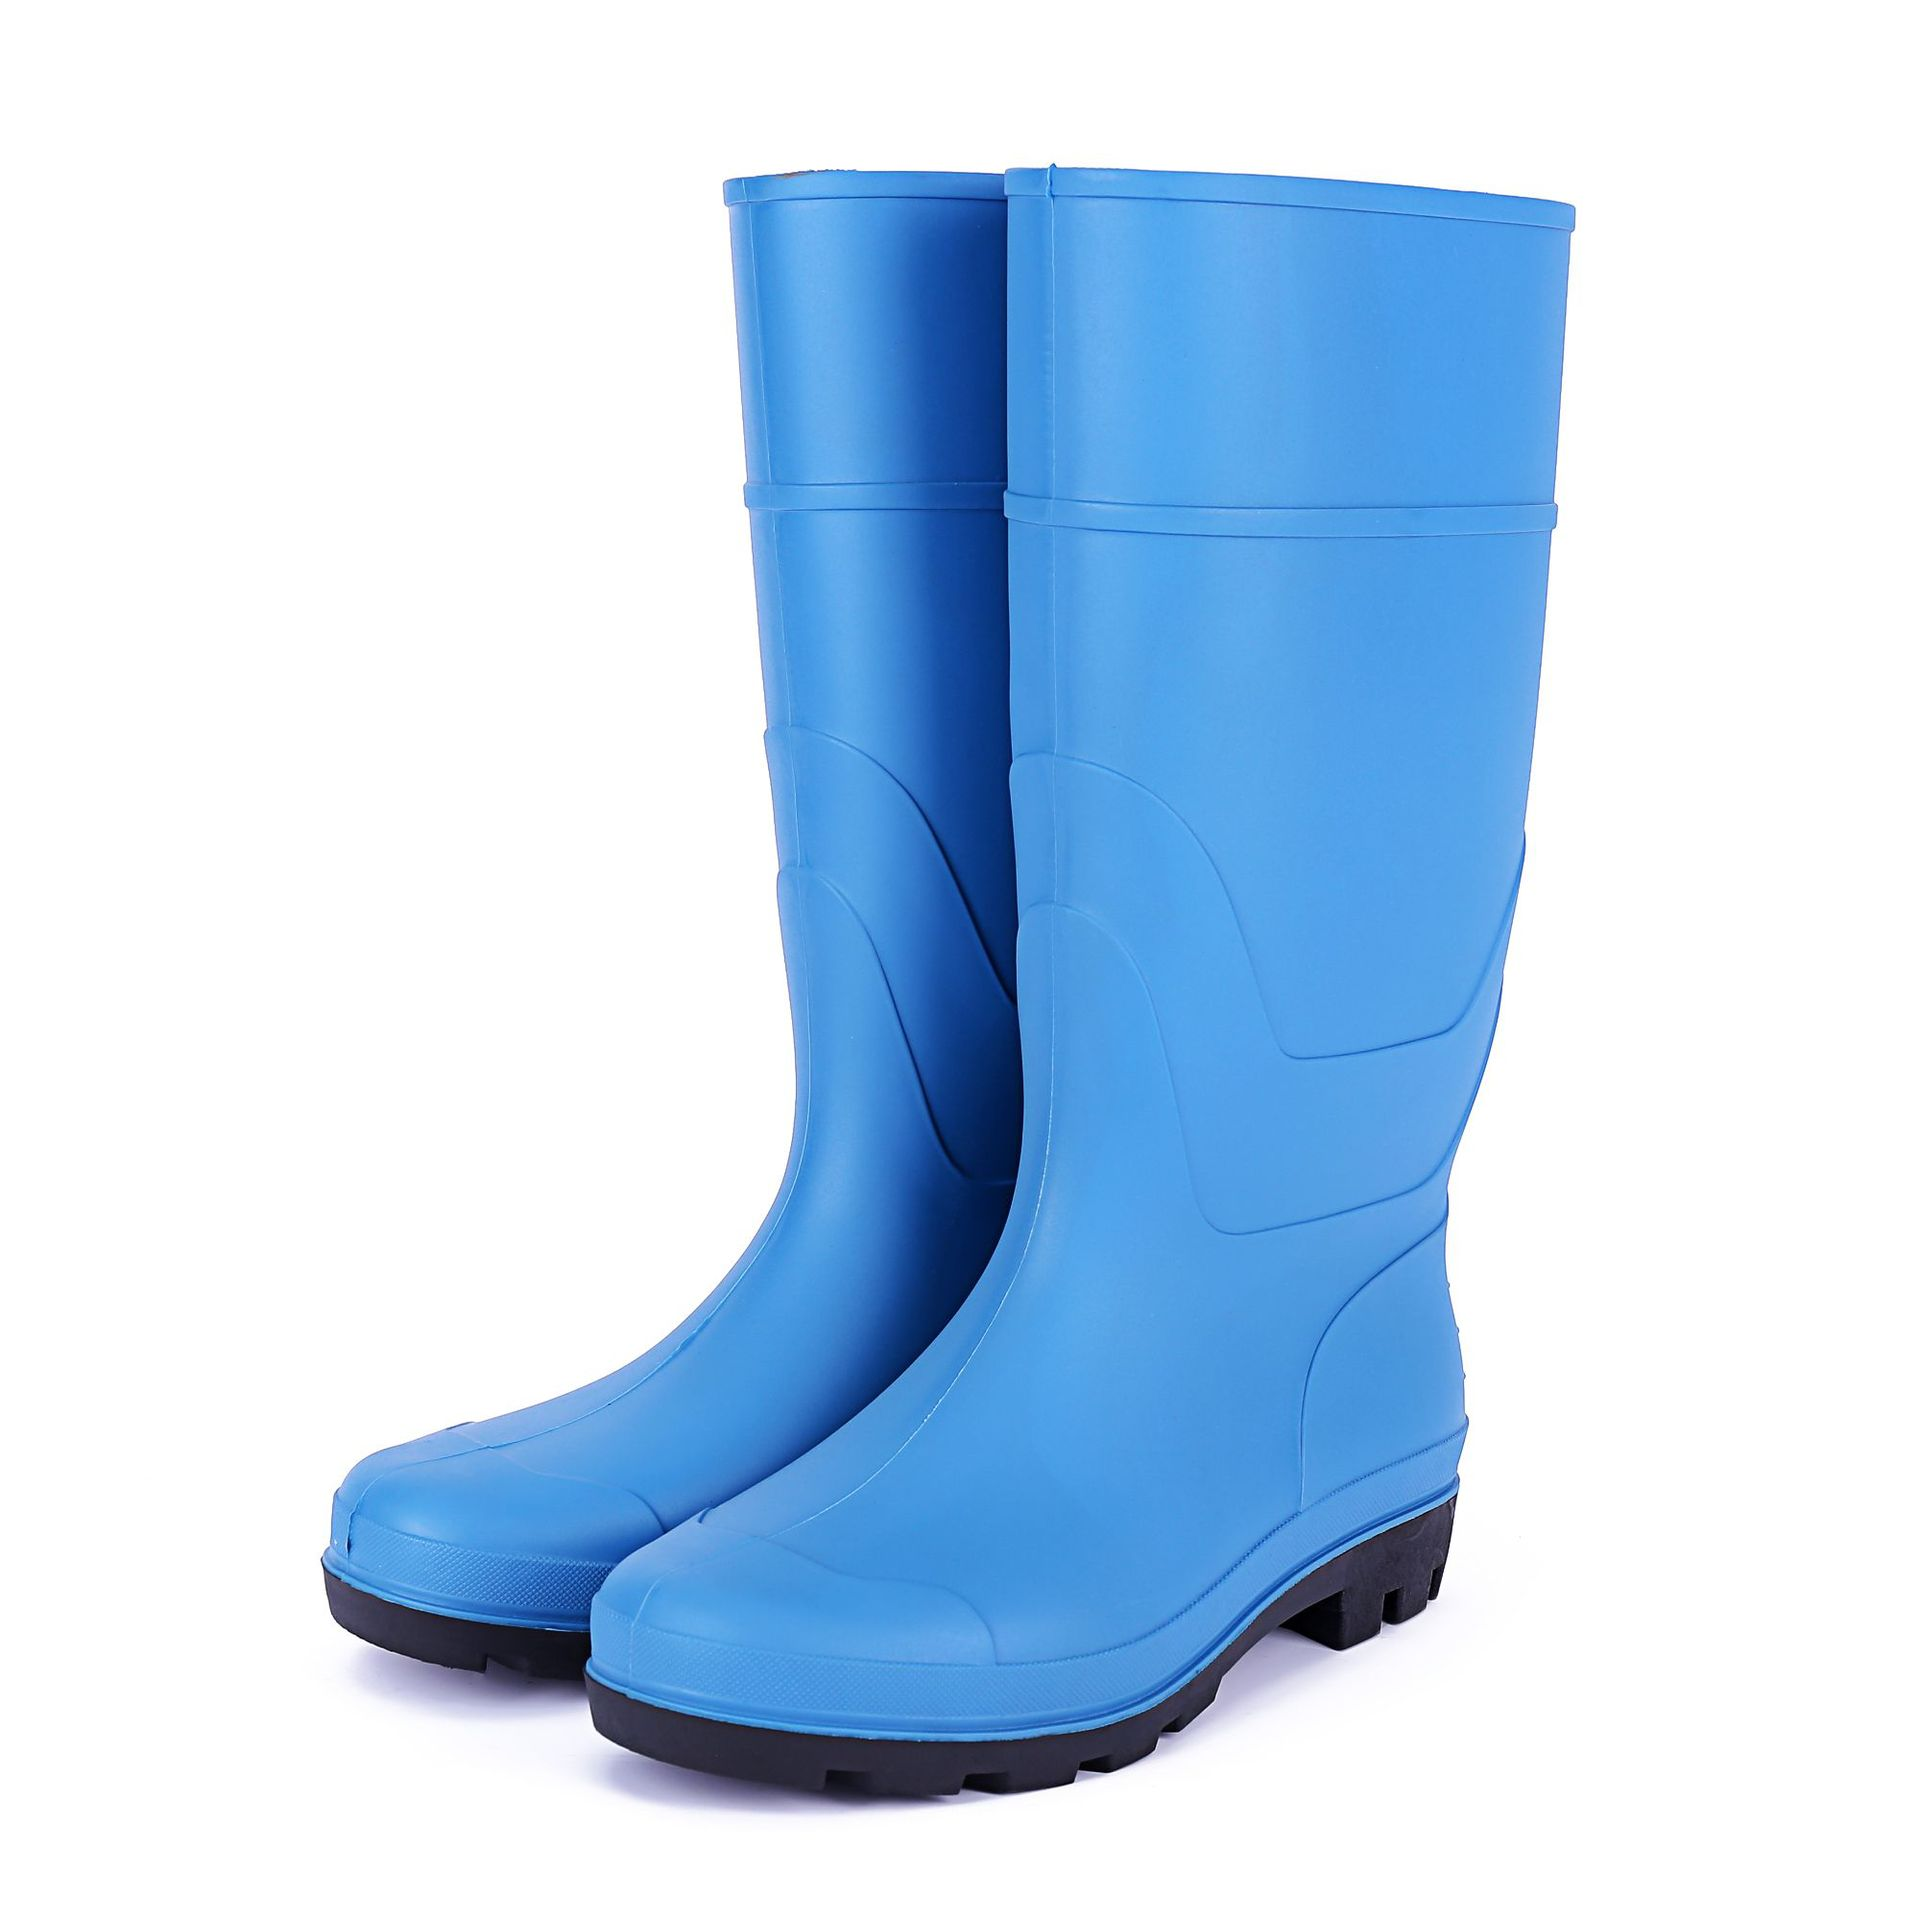 Steel Top Steel Insole Protection Boots Labor Safety Gong Kuang Xue PVC Anti-slip Wear-Resistant Rain Shoes Hight-top Waterproof